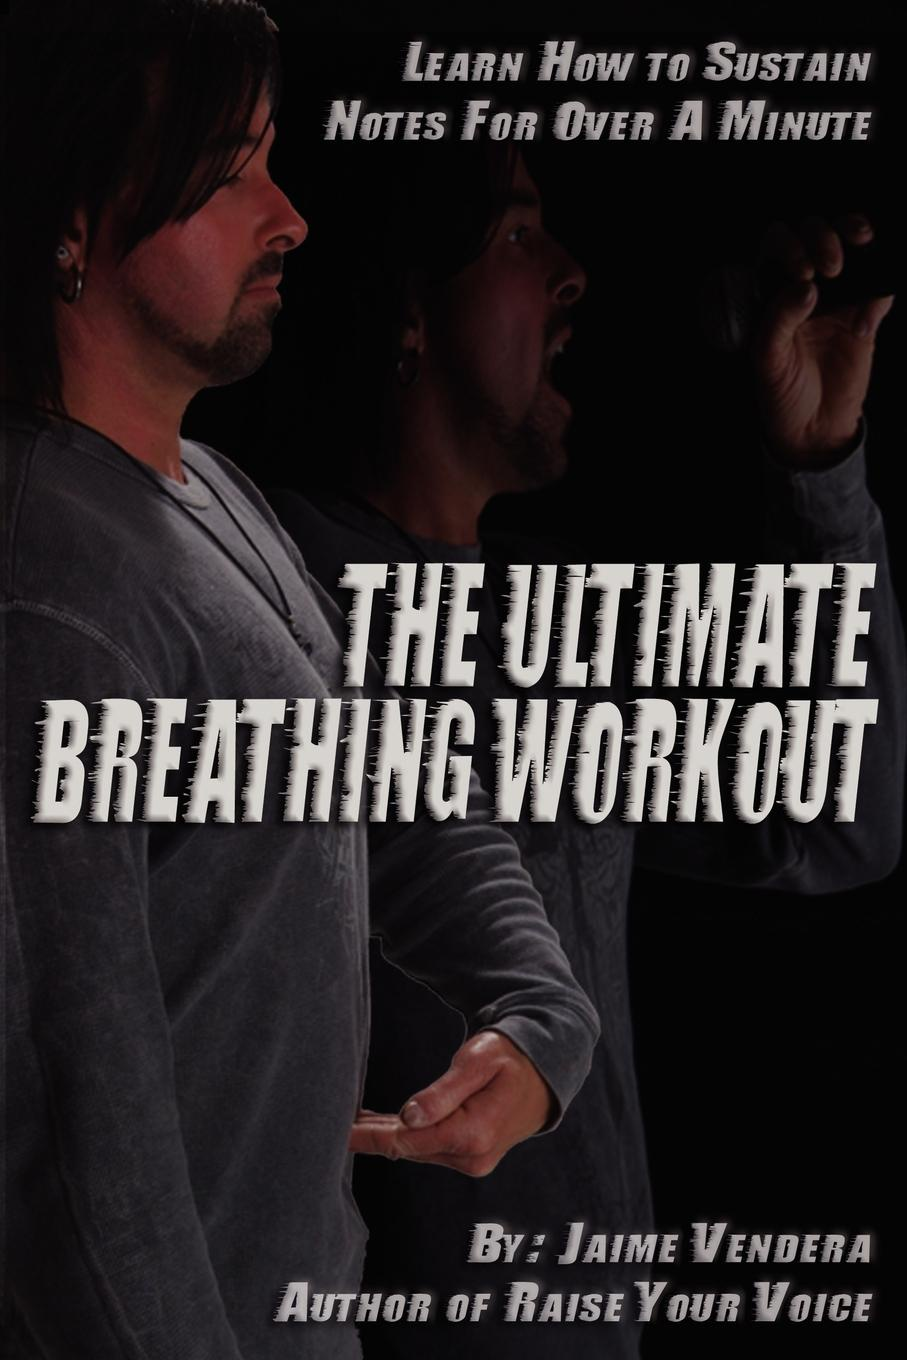 Jaime J. Vendera. The Ultimate Breathing Workout (Revised Edition)